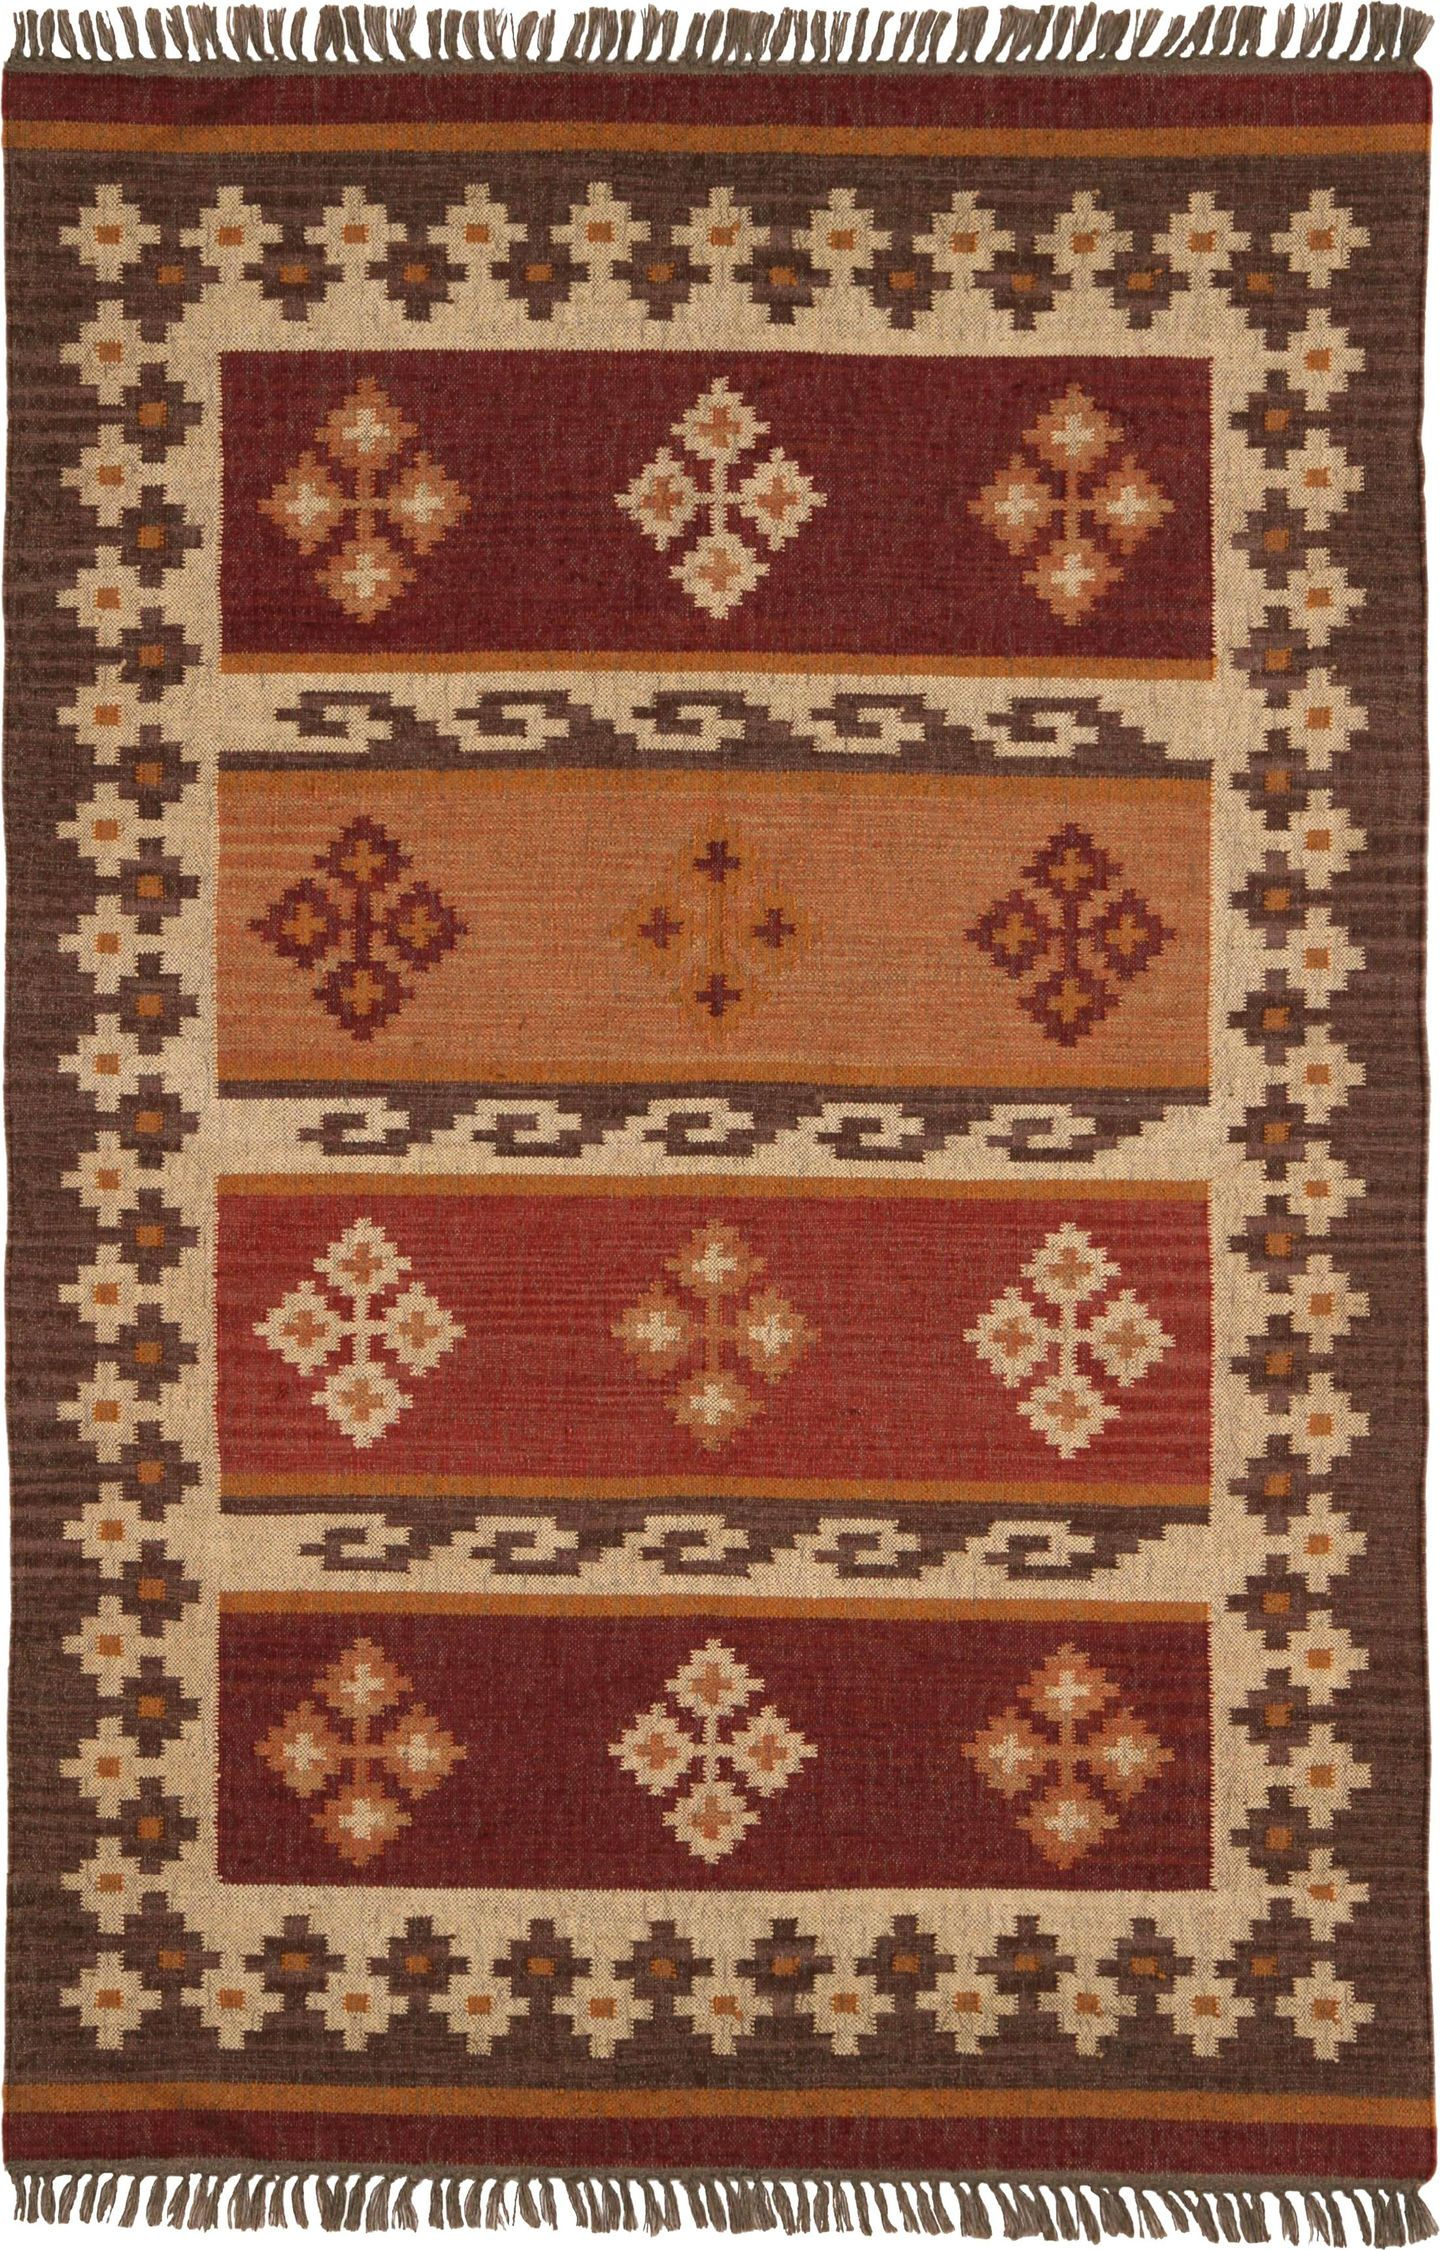 Hacienda Jewel Rug Color Burgundy Size 8 X 10 In 2020 Southwestern Area Rugs Area Rugs Colorful Rugs